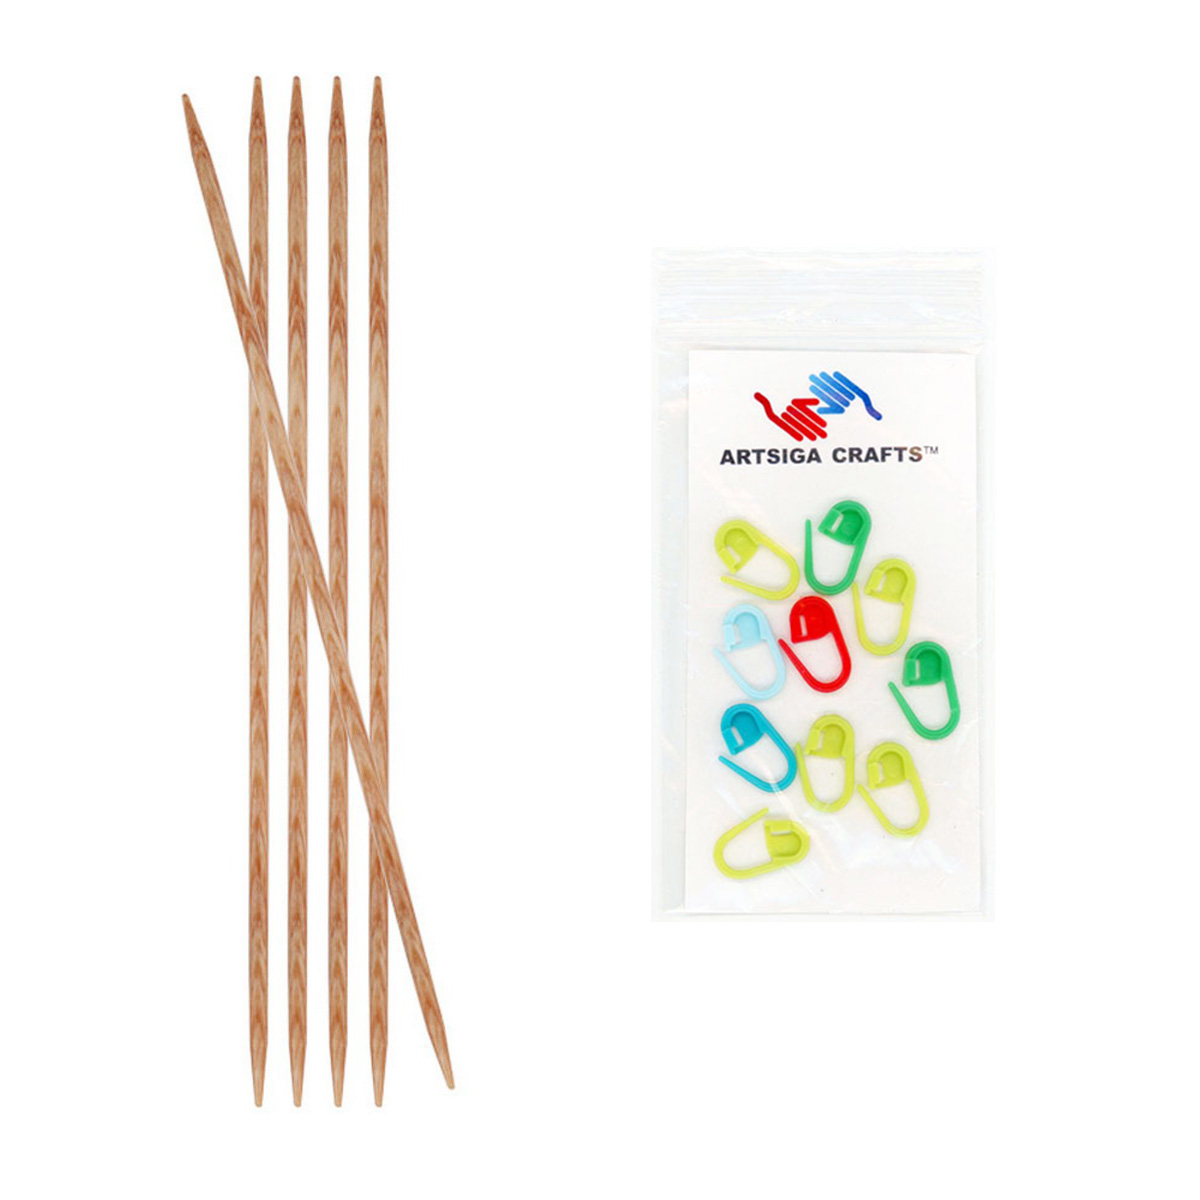 Knitter's Pride Bundle: Naturalz Double Pointed 6-inch (15cm) Knitting Needles (Set of 5) with 10 Artsiga Crafts Stitch Markers